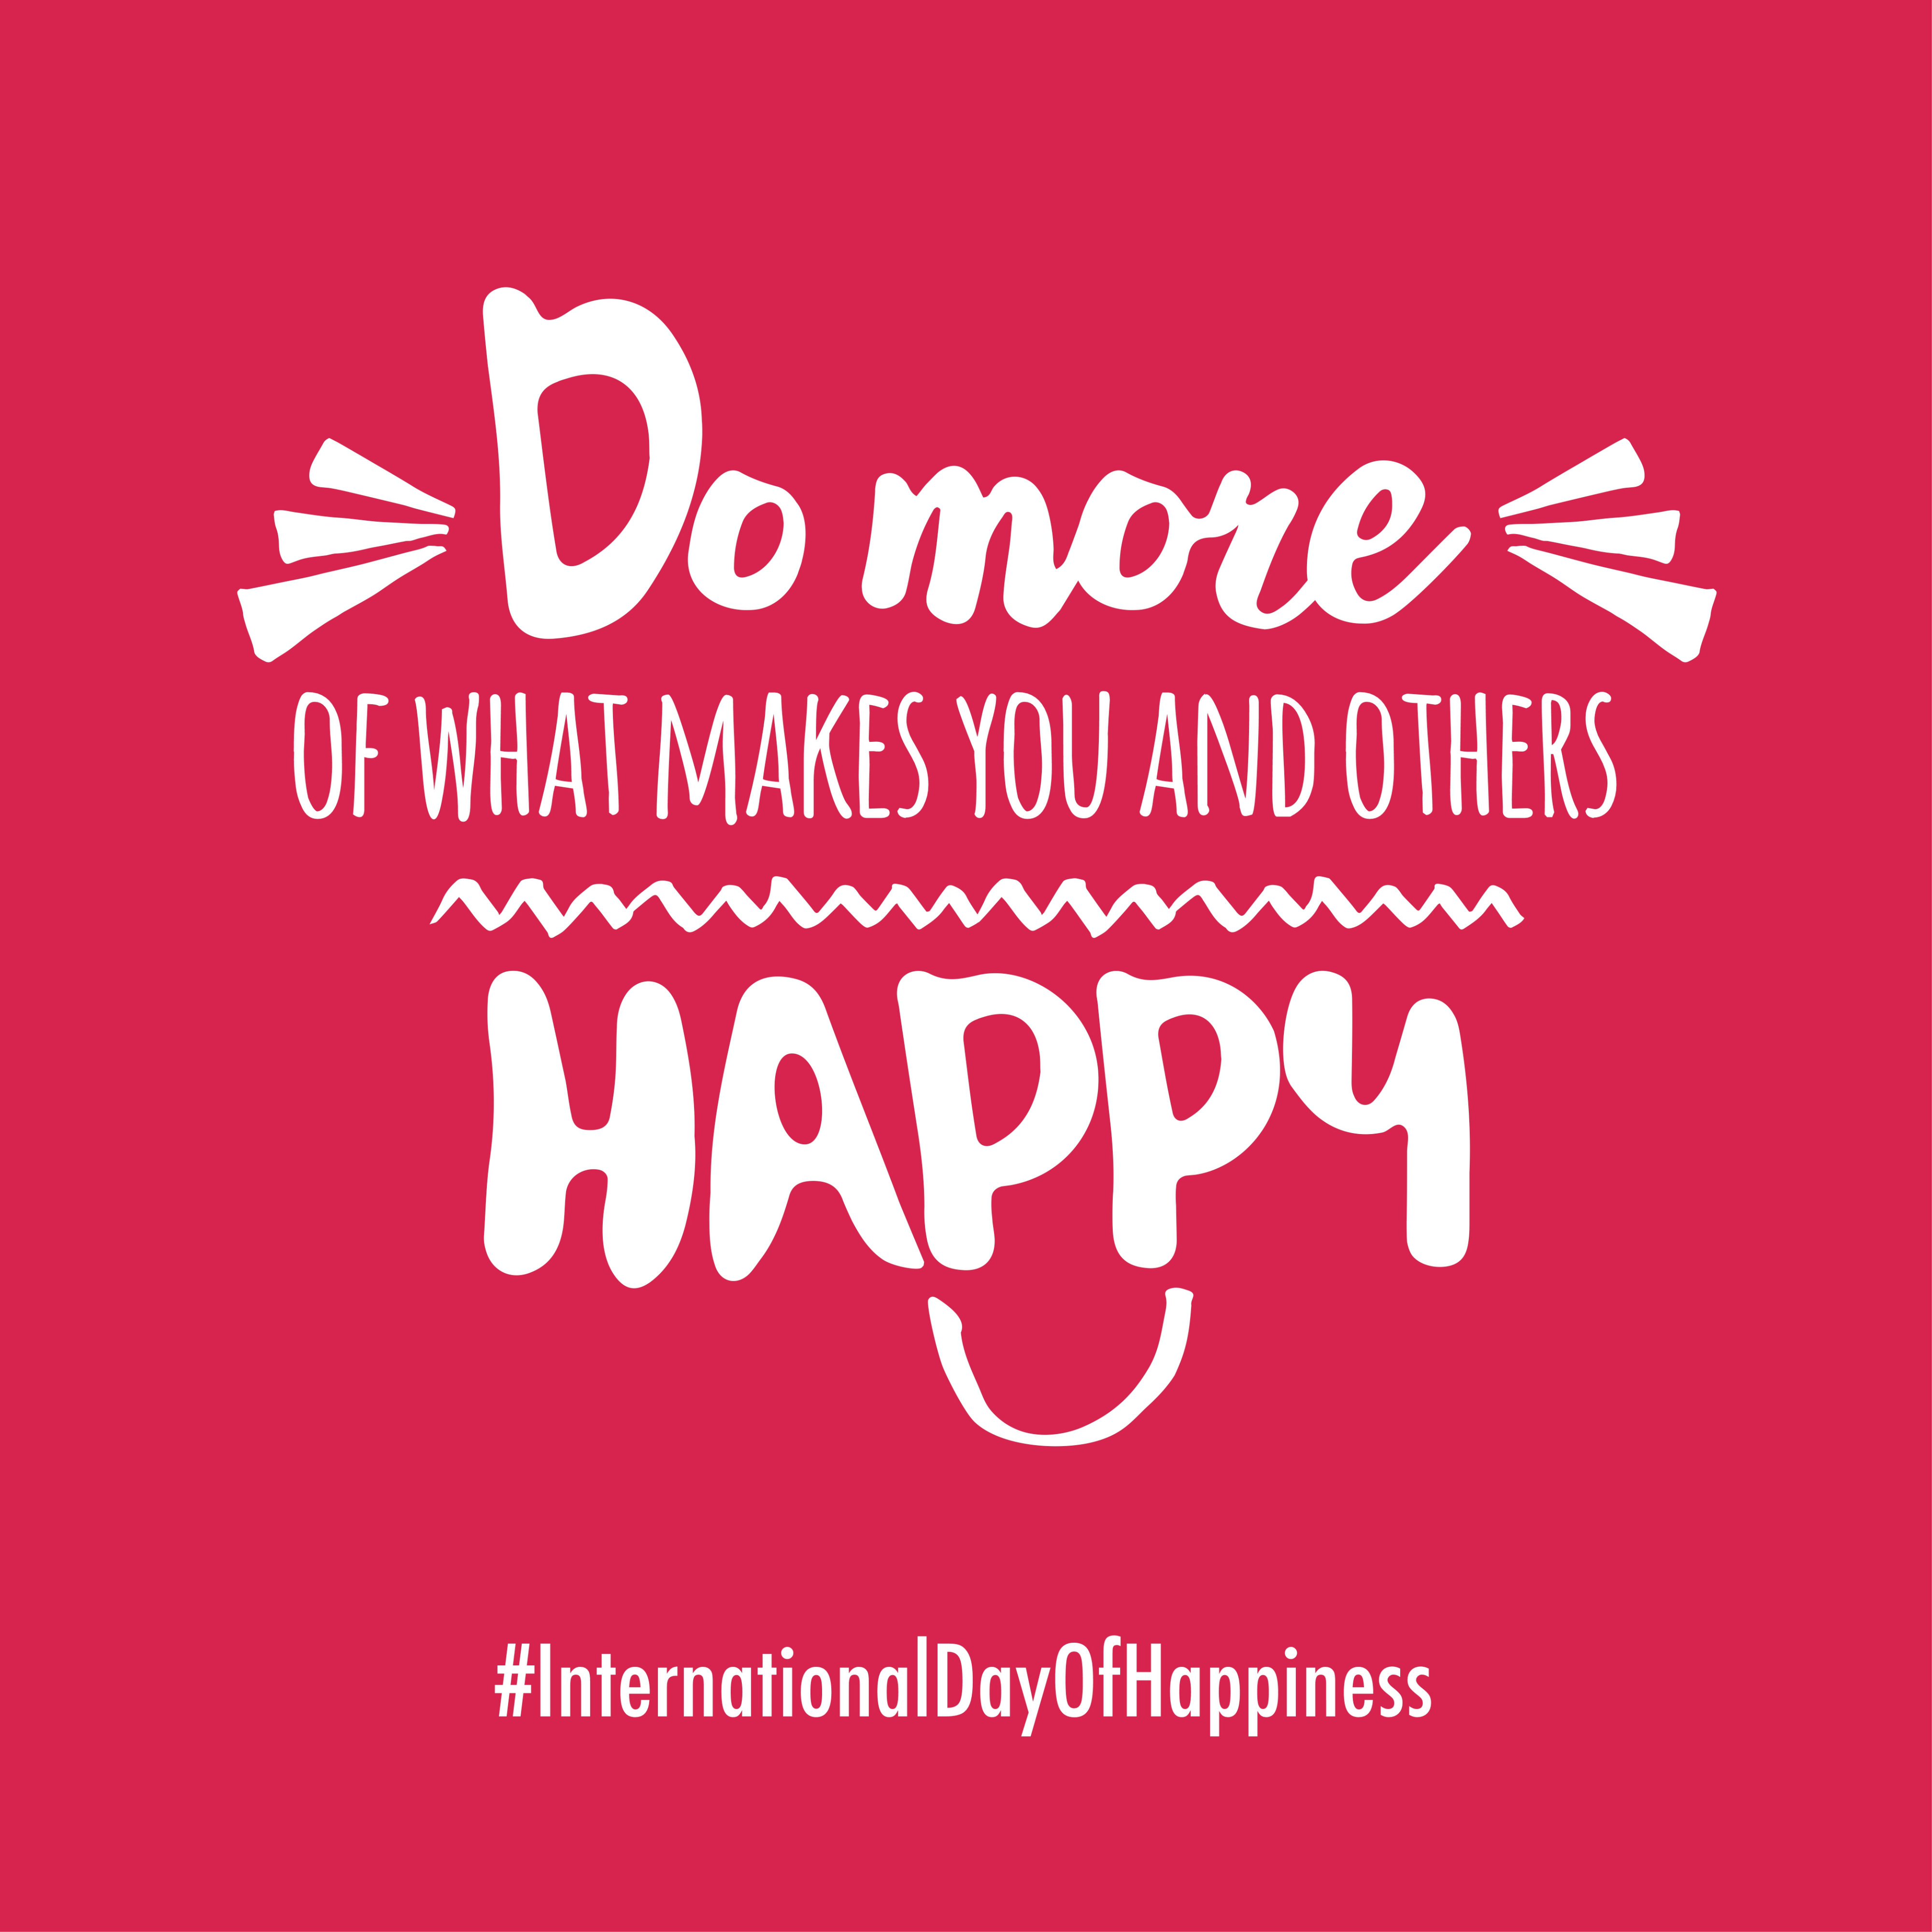 share these happiness ideas via social media using the hashtag internationaldayofhappiness to inspire others and help spread the word